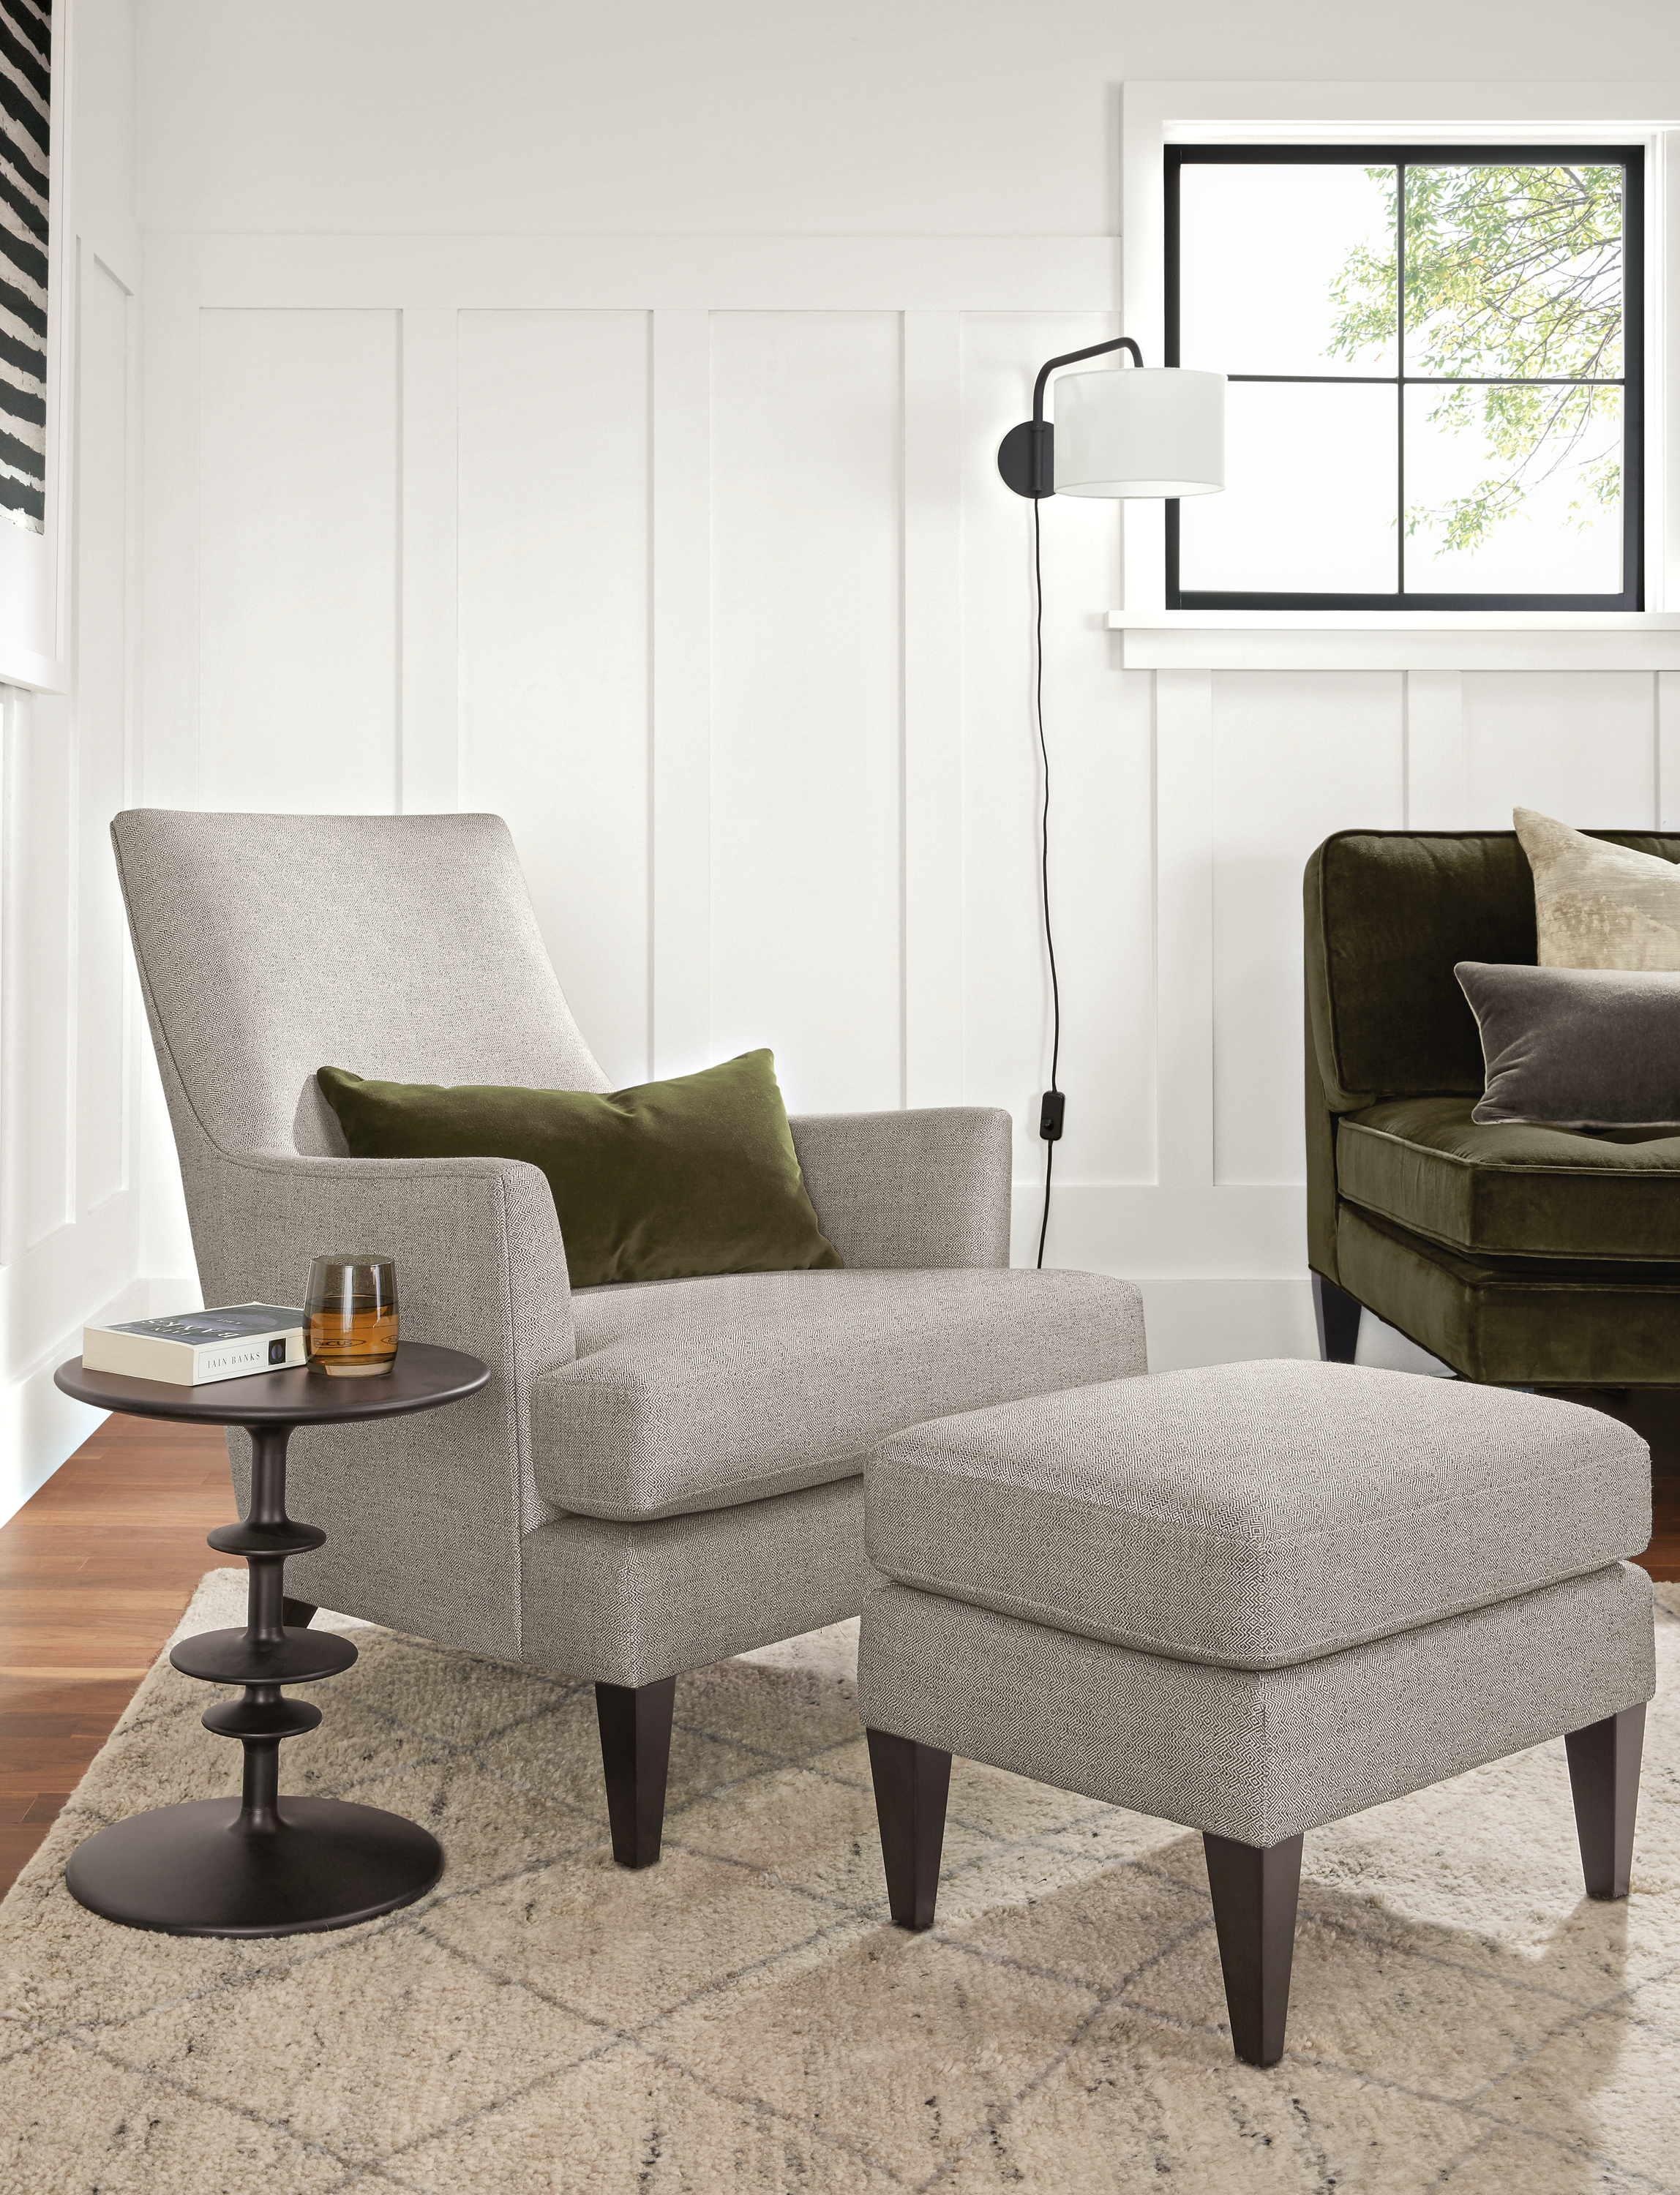 200 Lounge Accent Chairs Ideas In